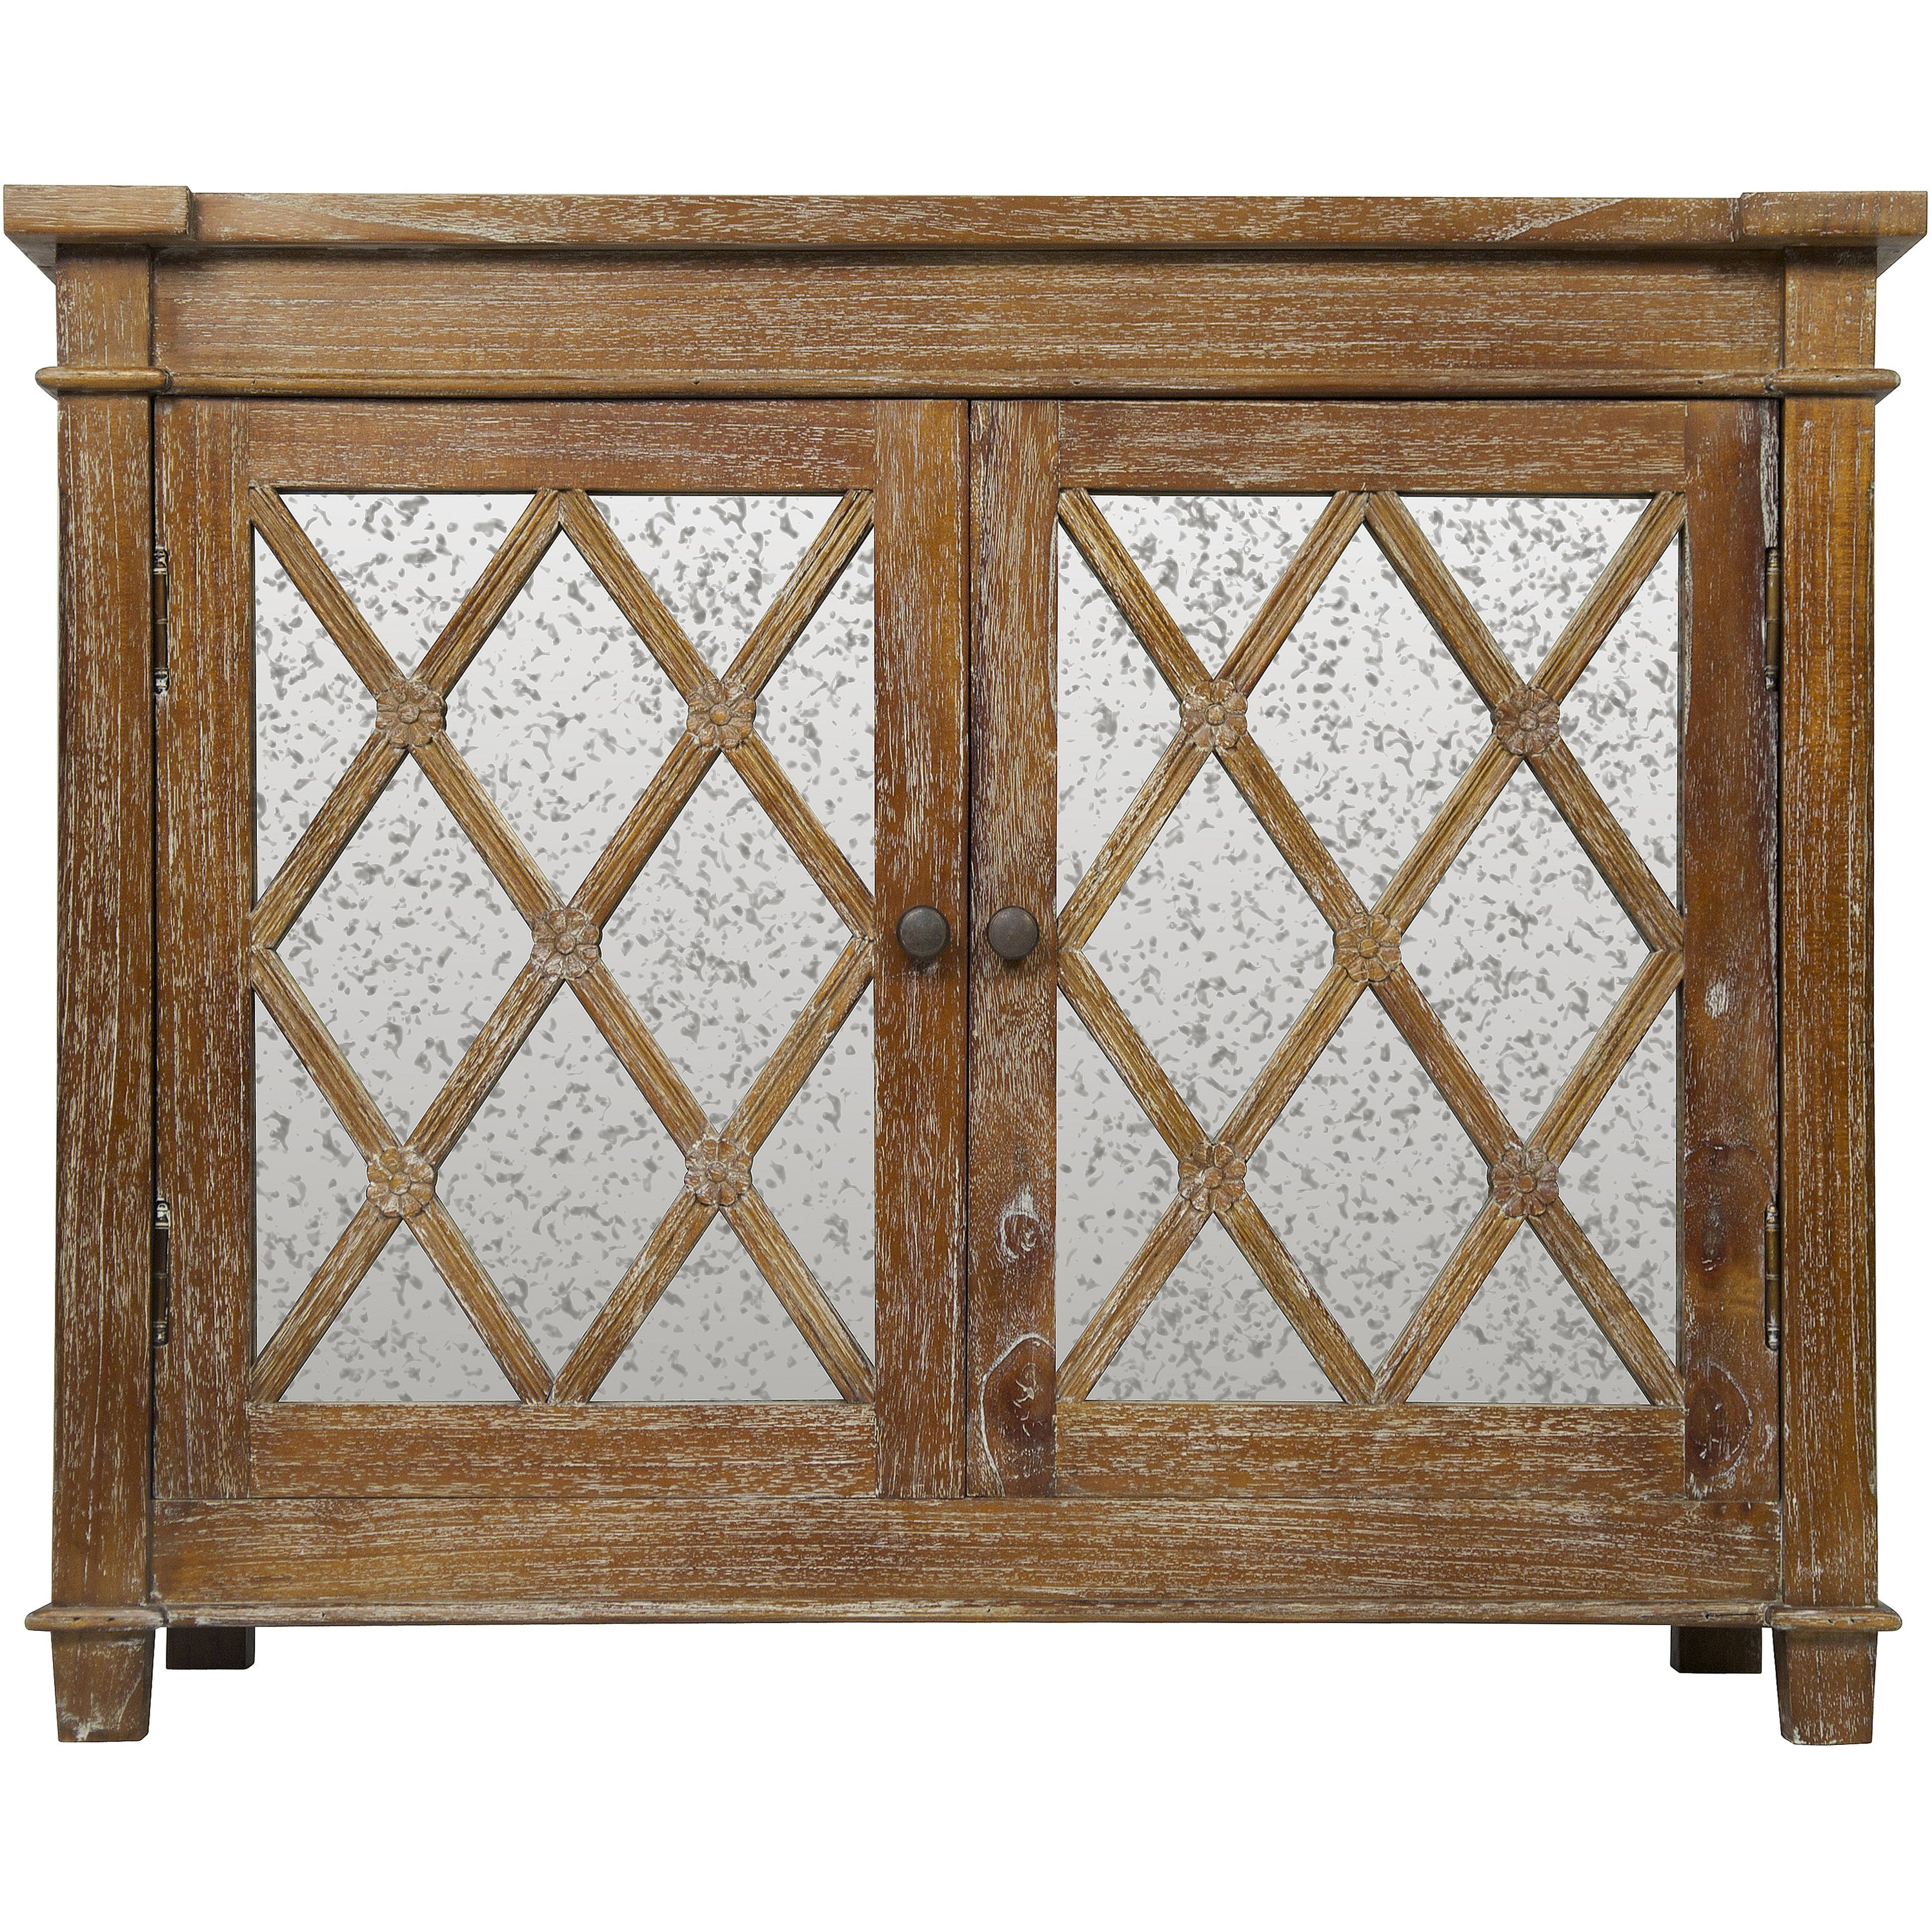 Elis Wood And Antique Glass Sideboard Media Center Overstock 10102290